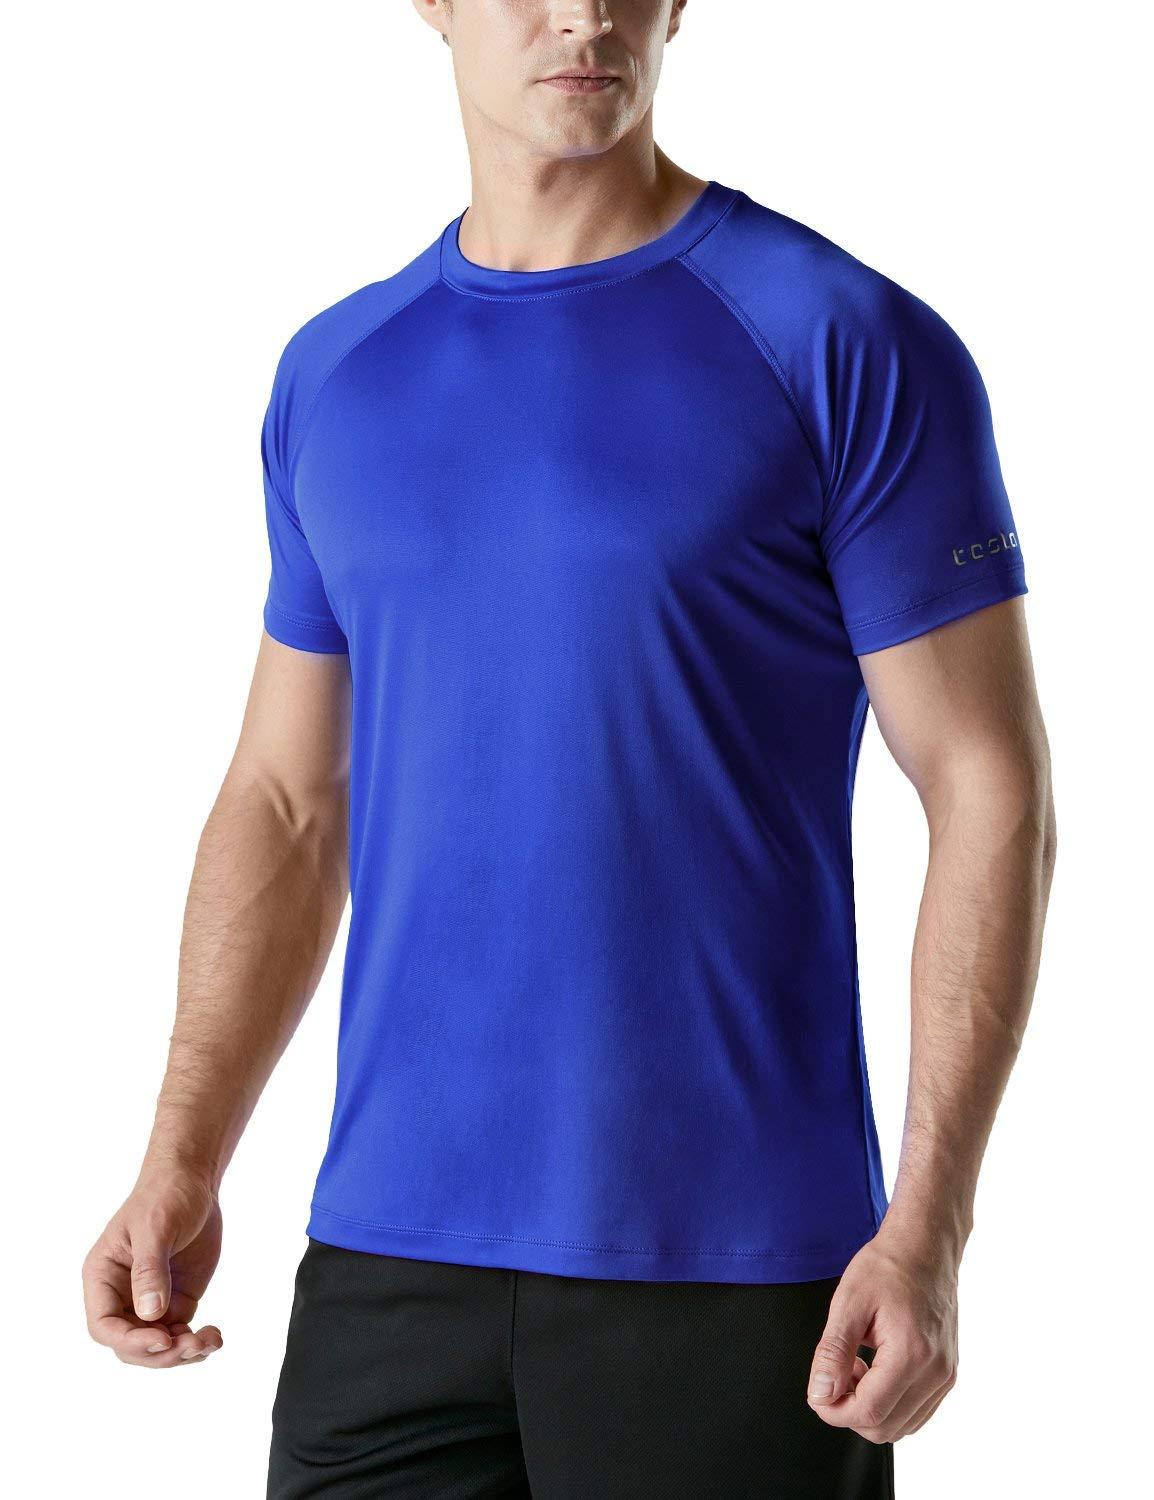 Tesla Men's HyperDri Short Sleeve T-Shirt Athletic Cool Running Top MTS04/MTS03